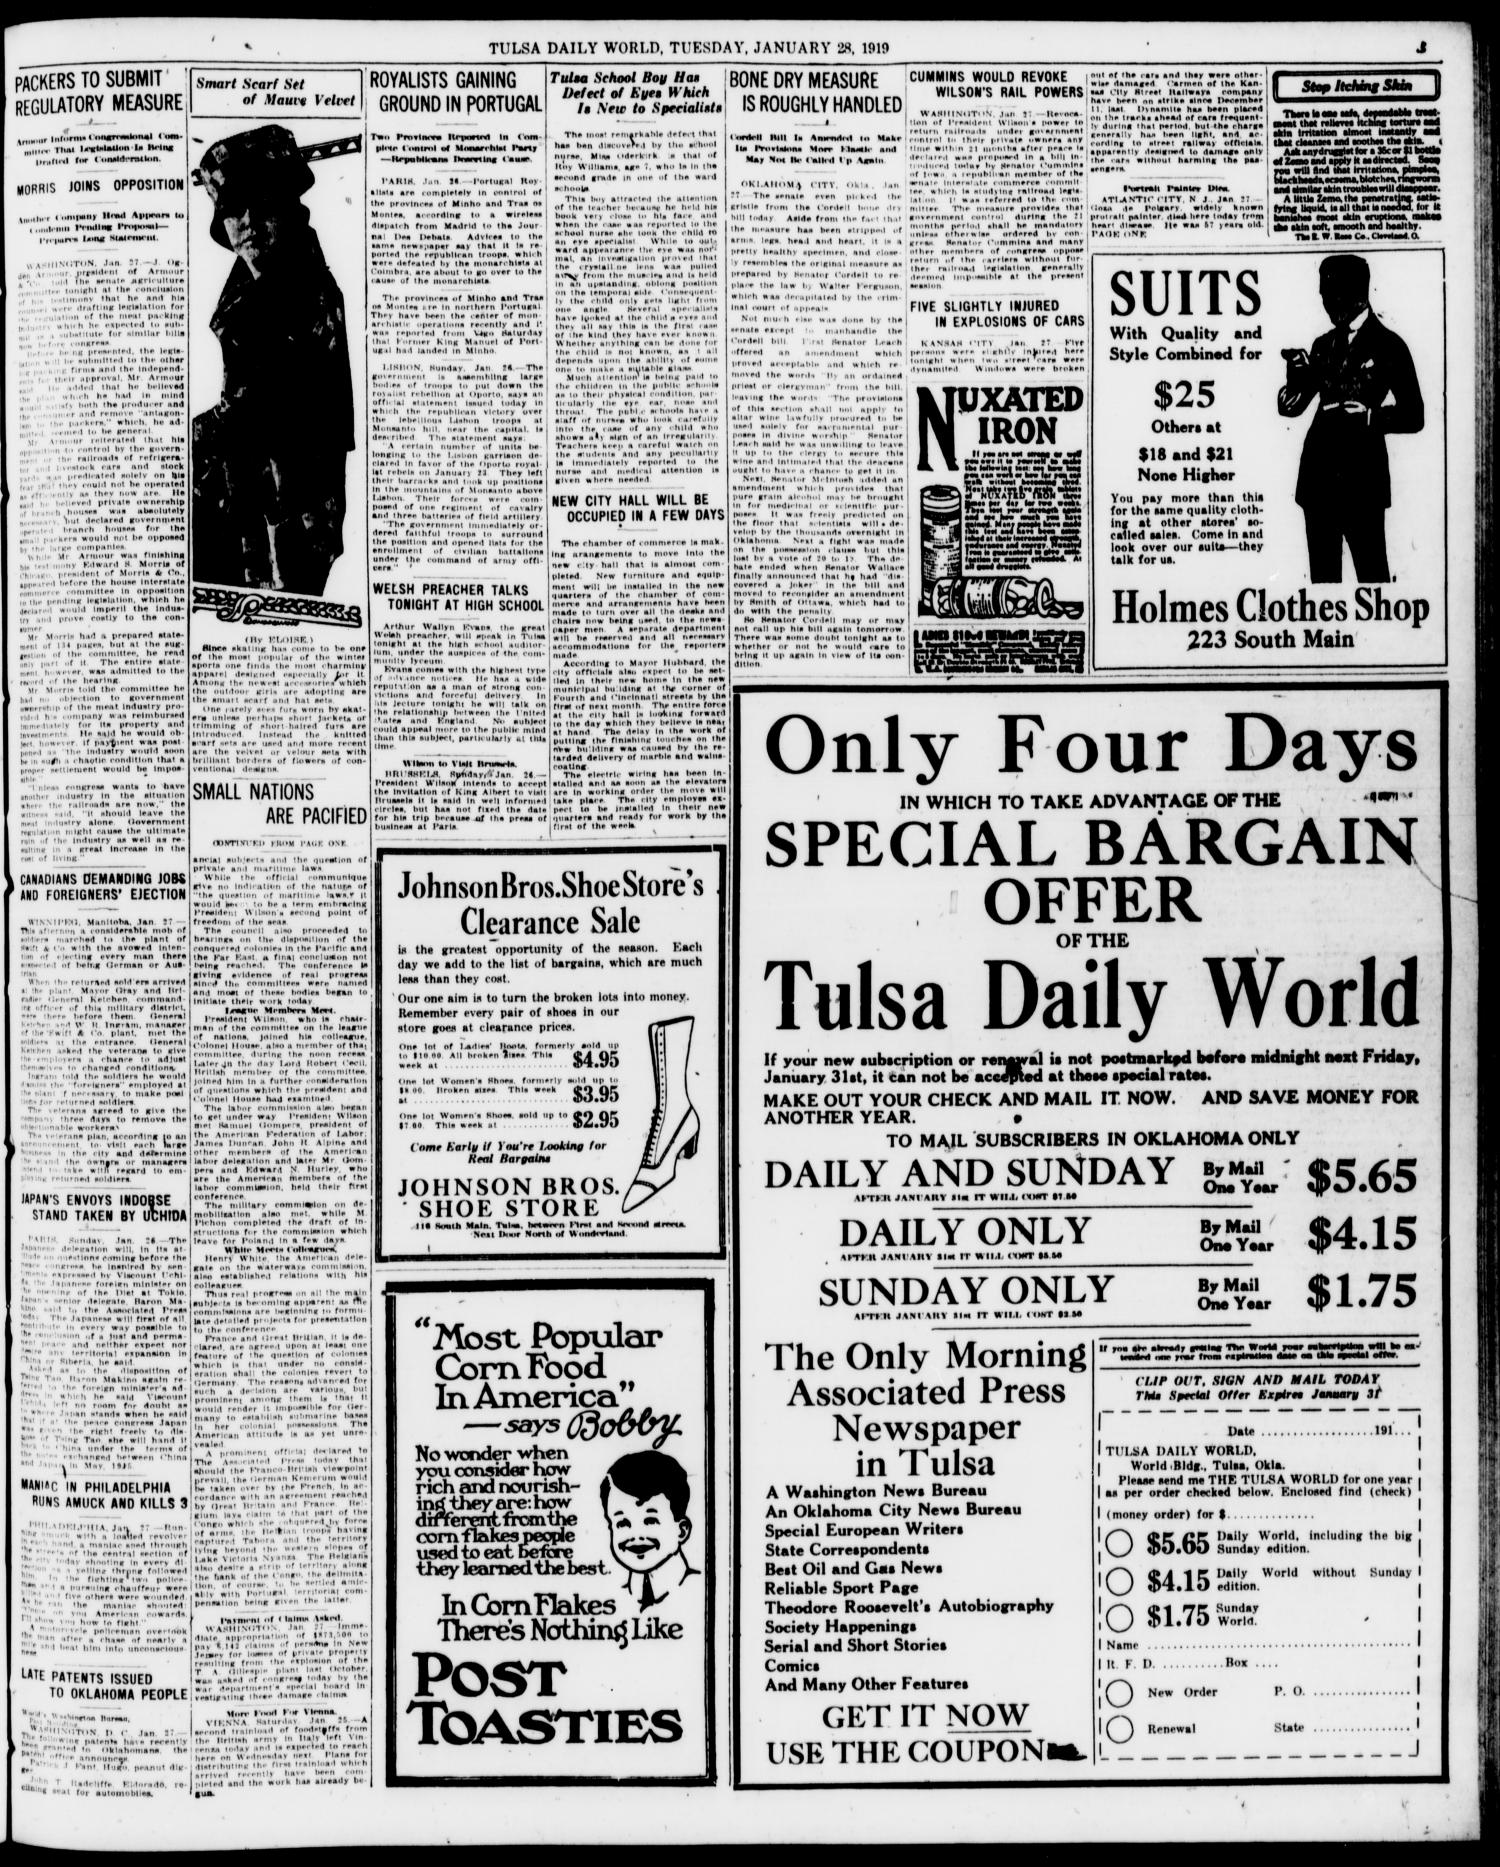 Tulsa Daily World (Tulsa, Okla ), Vol  13, No  127, Ed  1